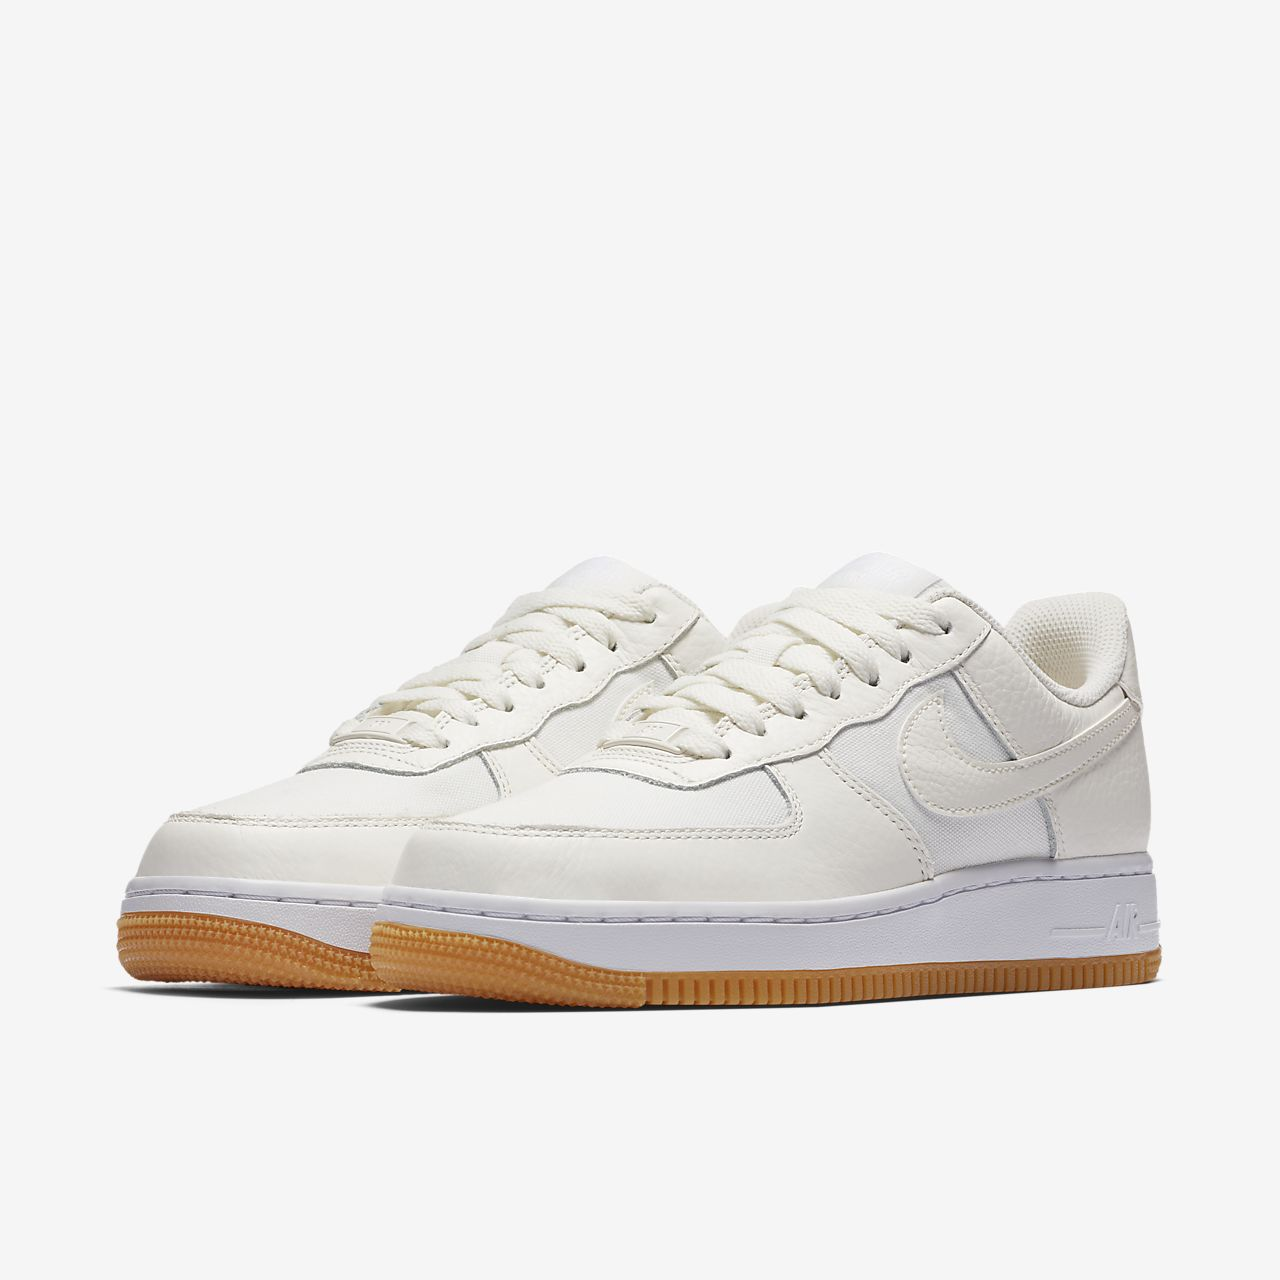 gum sole air force 1 nz